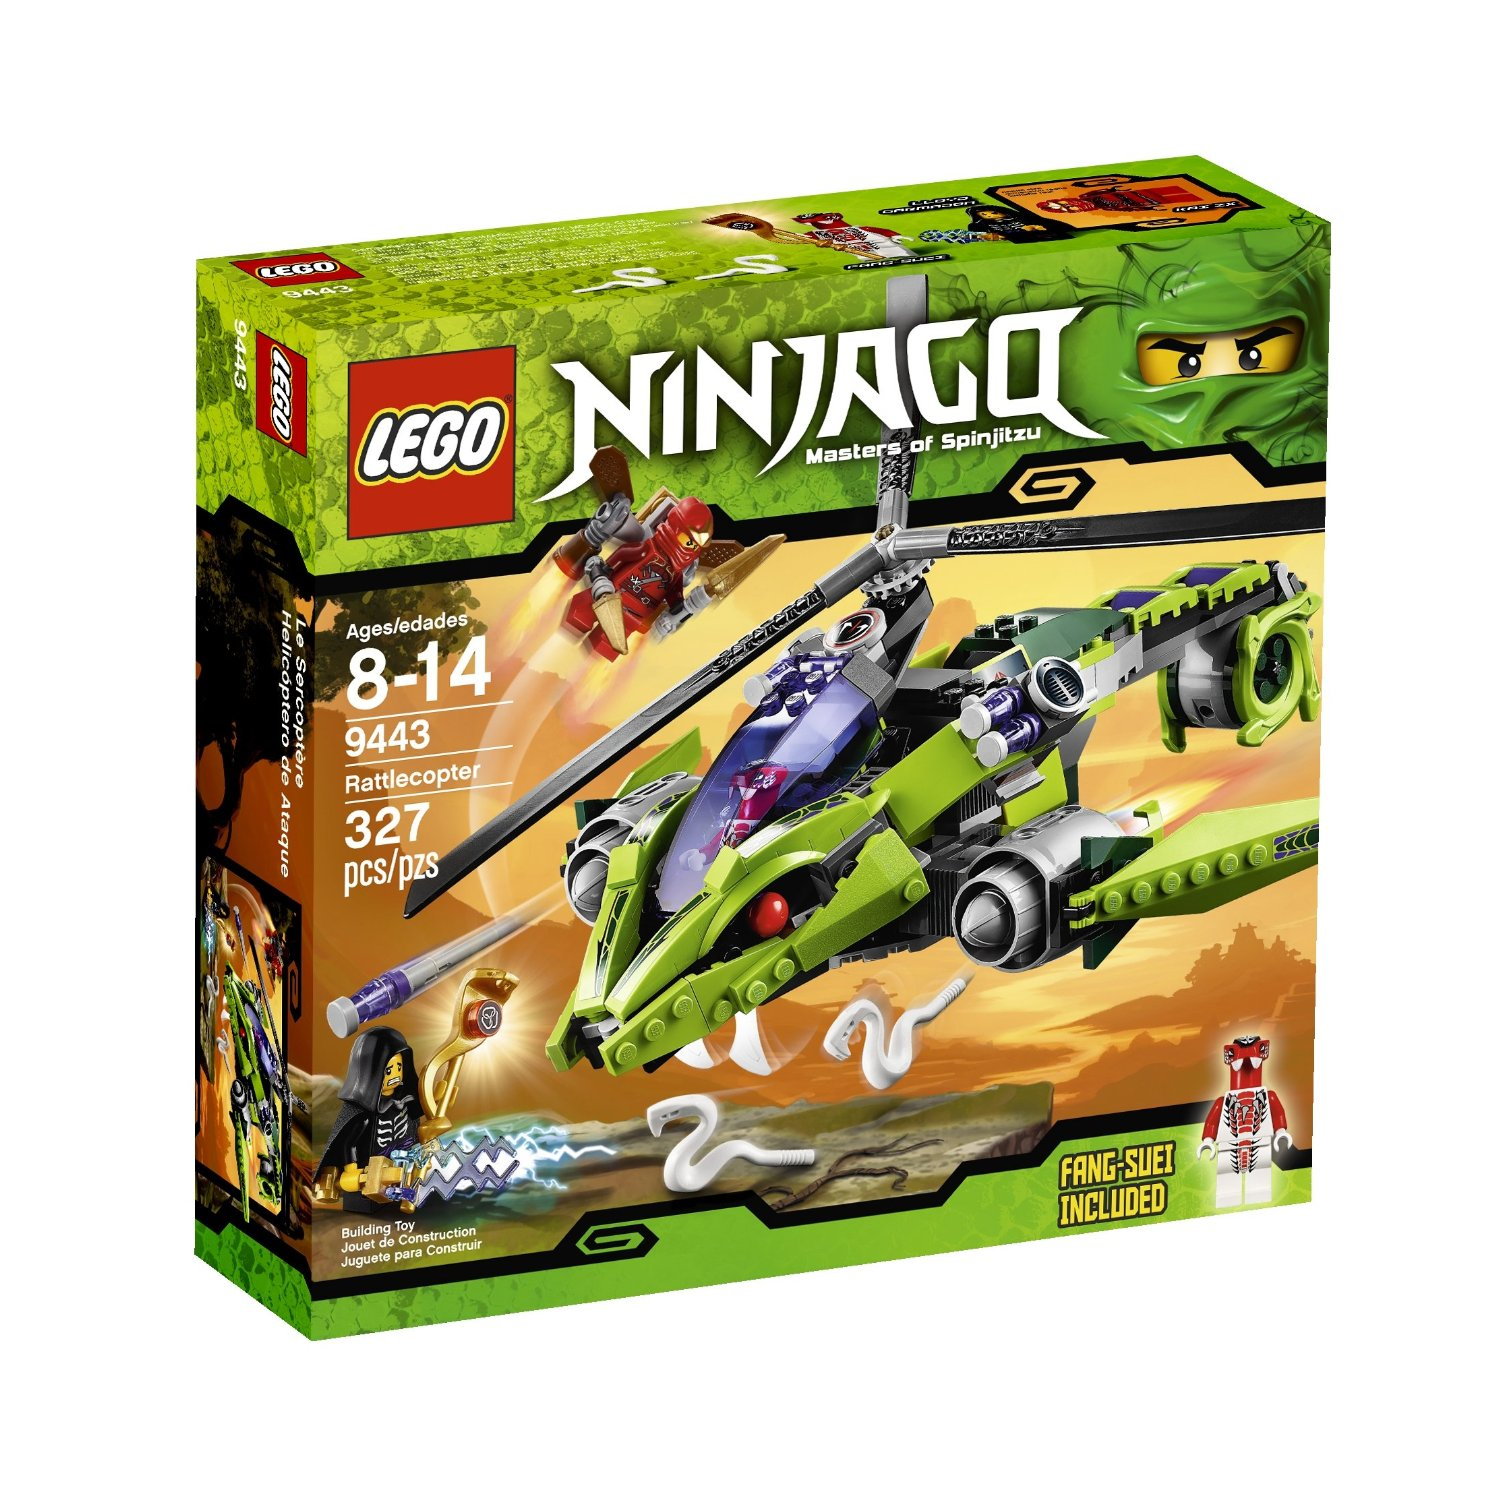 toy helicopter 4 blades with Win A Lego Ninjago For Your Lego Lover Giveaway on Grindor  Movie additionally Jurassic World Fallen Kingdom Set likewise Win A Lego Ninjago For Your Lego Lover Giveaway furthermore Lego Ninjago Ninjacopter 70724 also Vintage Nomura Helicopter Tin Friction.